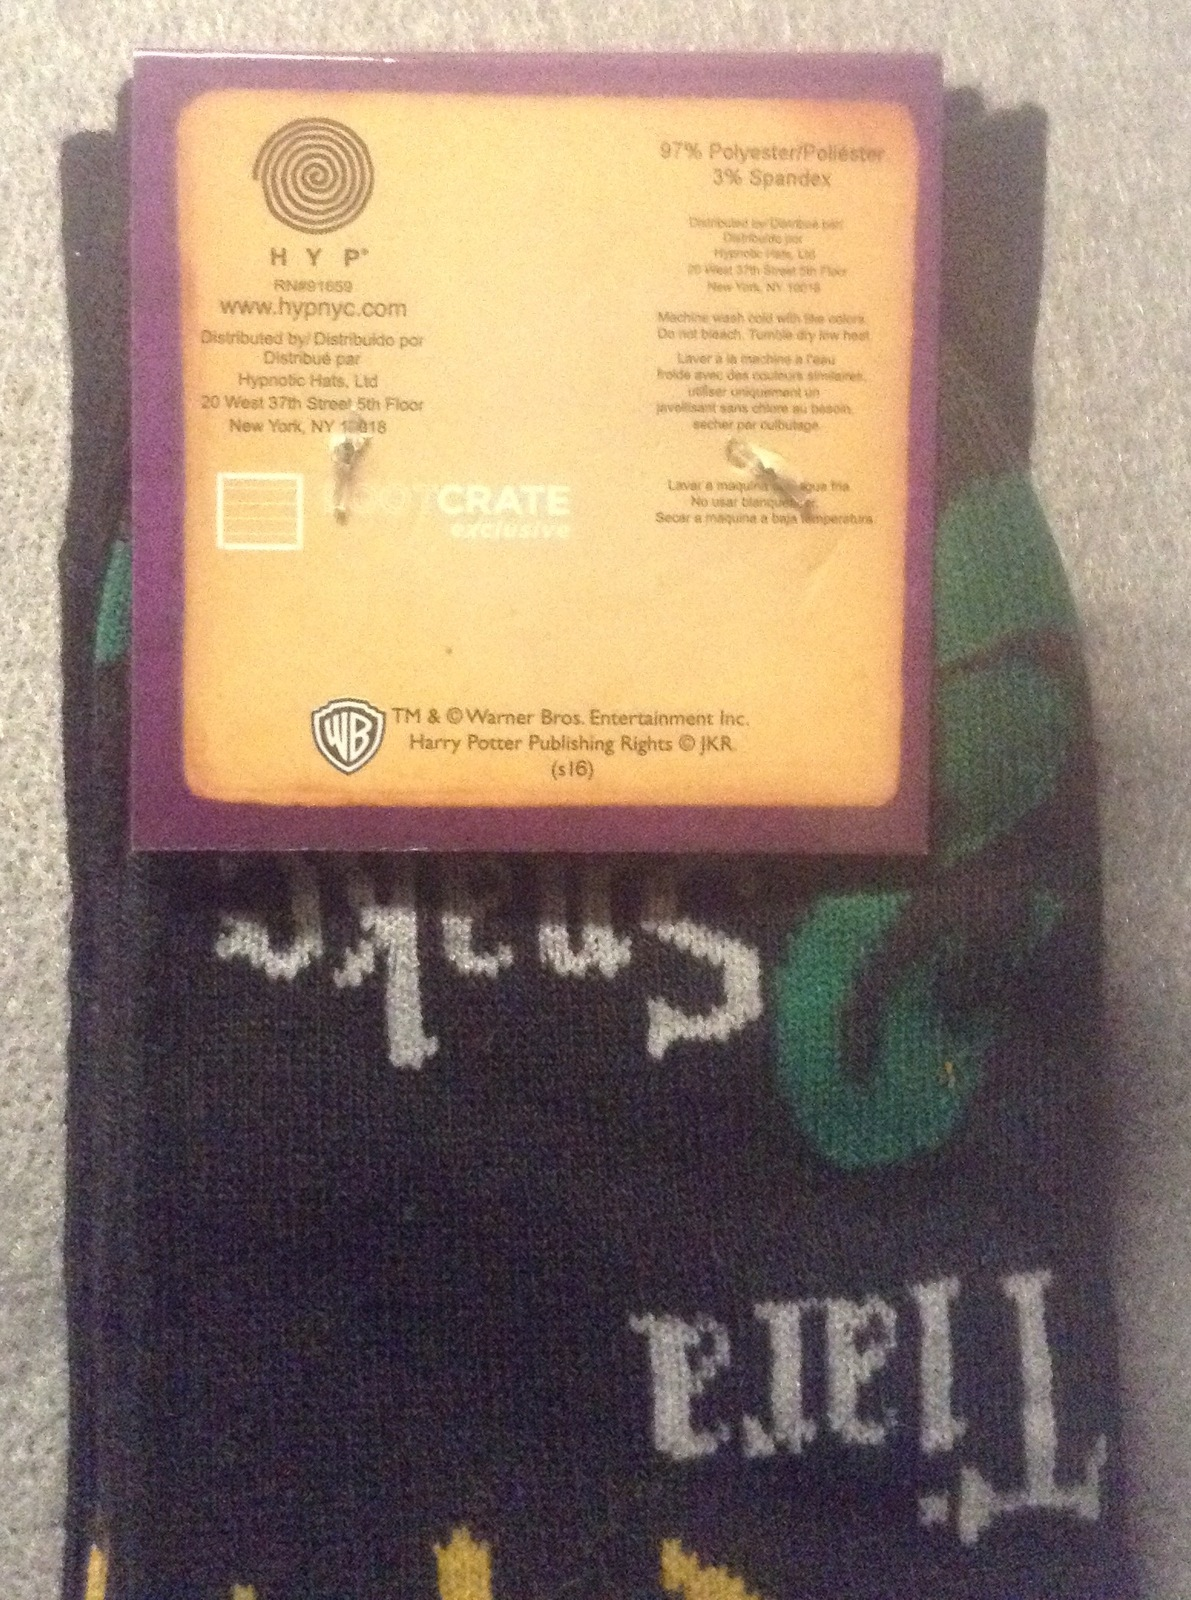 Harry Potter Socks Lootcrate Exclusive Size 6-12 Quest Voldemort's Horcruxes